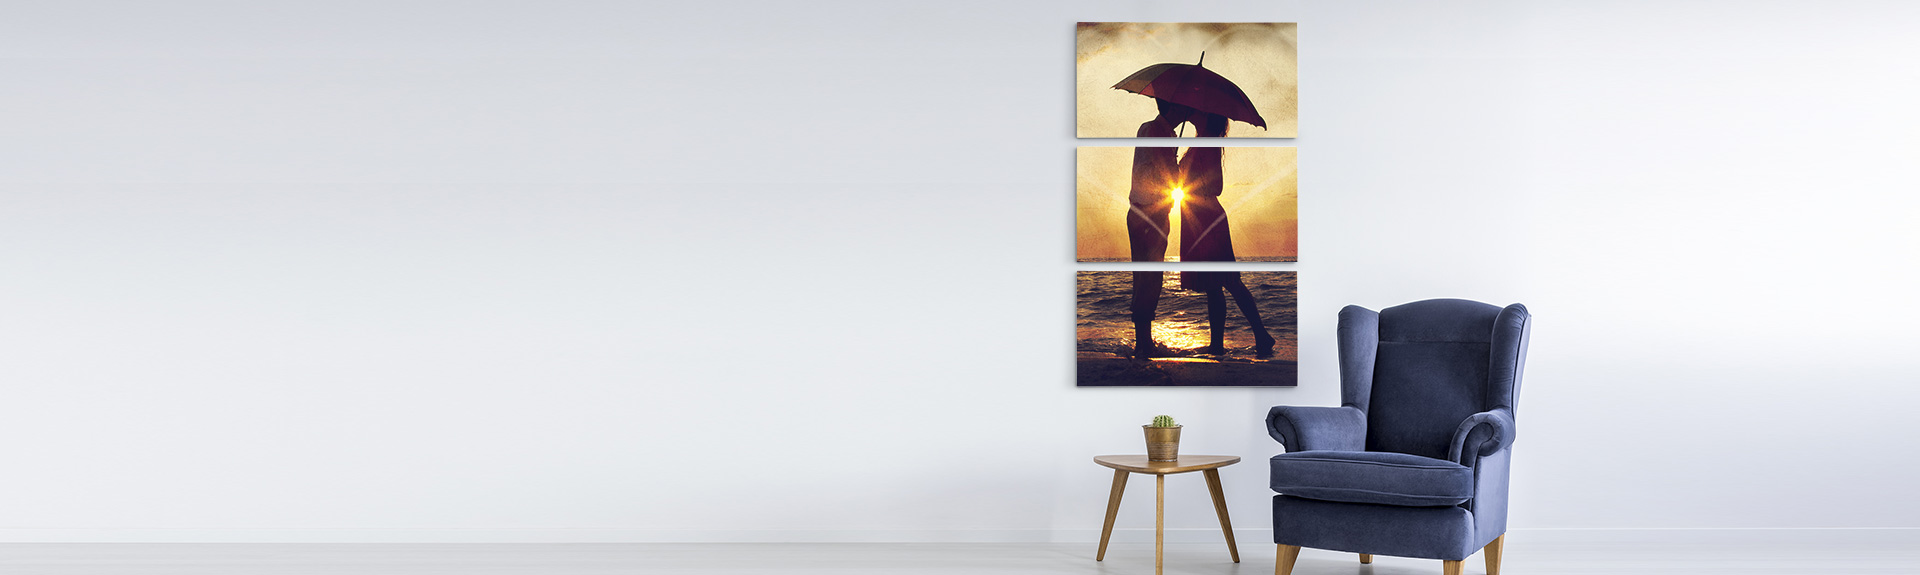 Embellish Your Home with Canvas Wall Display